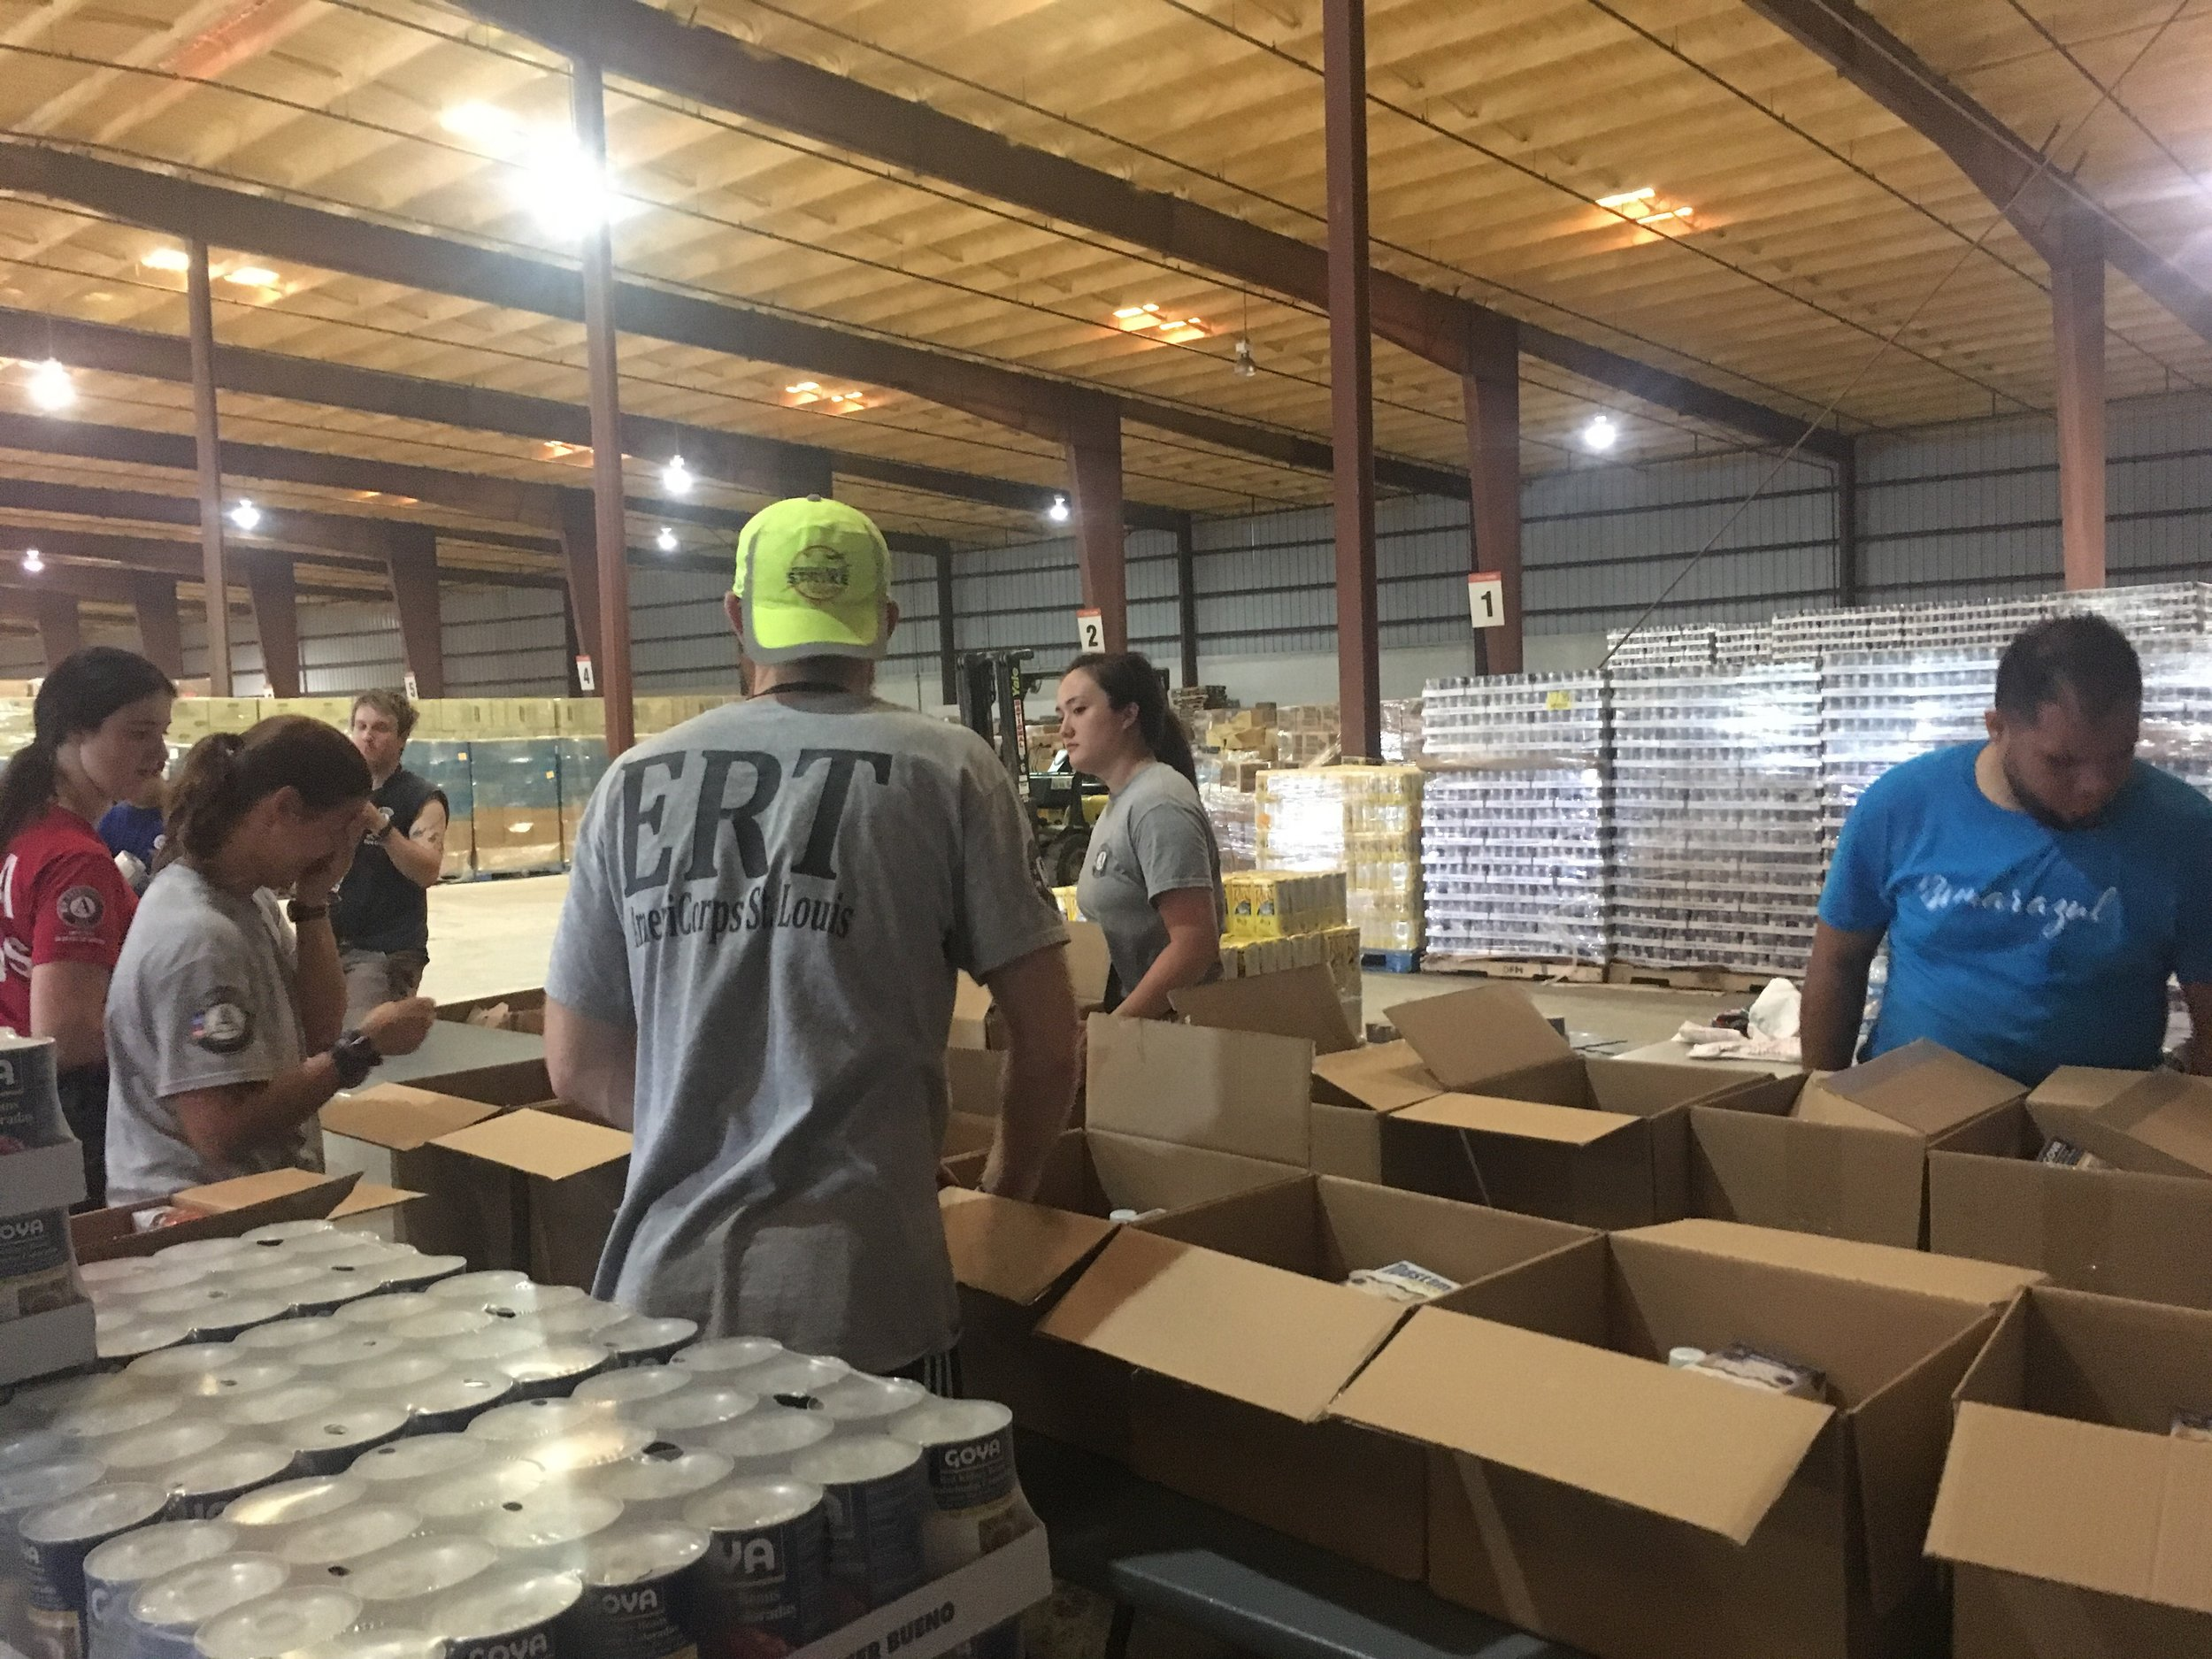 Year 24 Members, Leela Hospach and Matt Farrington, assist AmeriCorps, FEMACorps, and other local volunteer organizations in repackaging life sustaining supplies to Points of Distribution in remote and isolated areas of Puerto Rico in response to Hurricane Maria, 2017